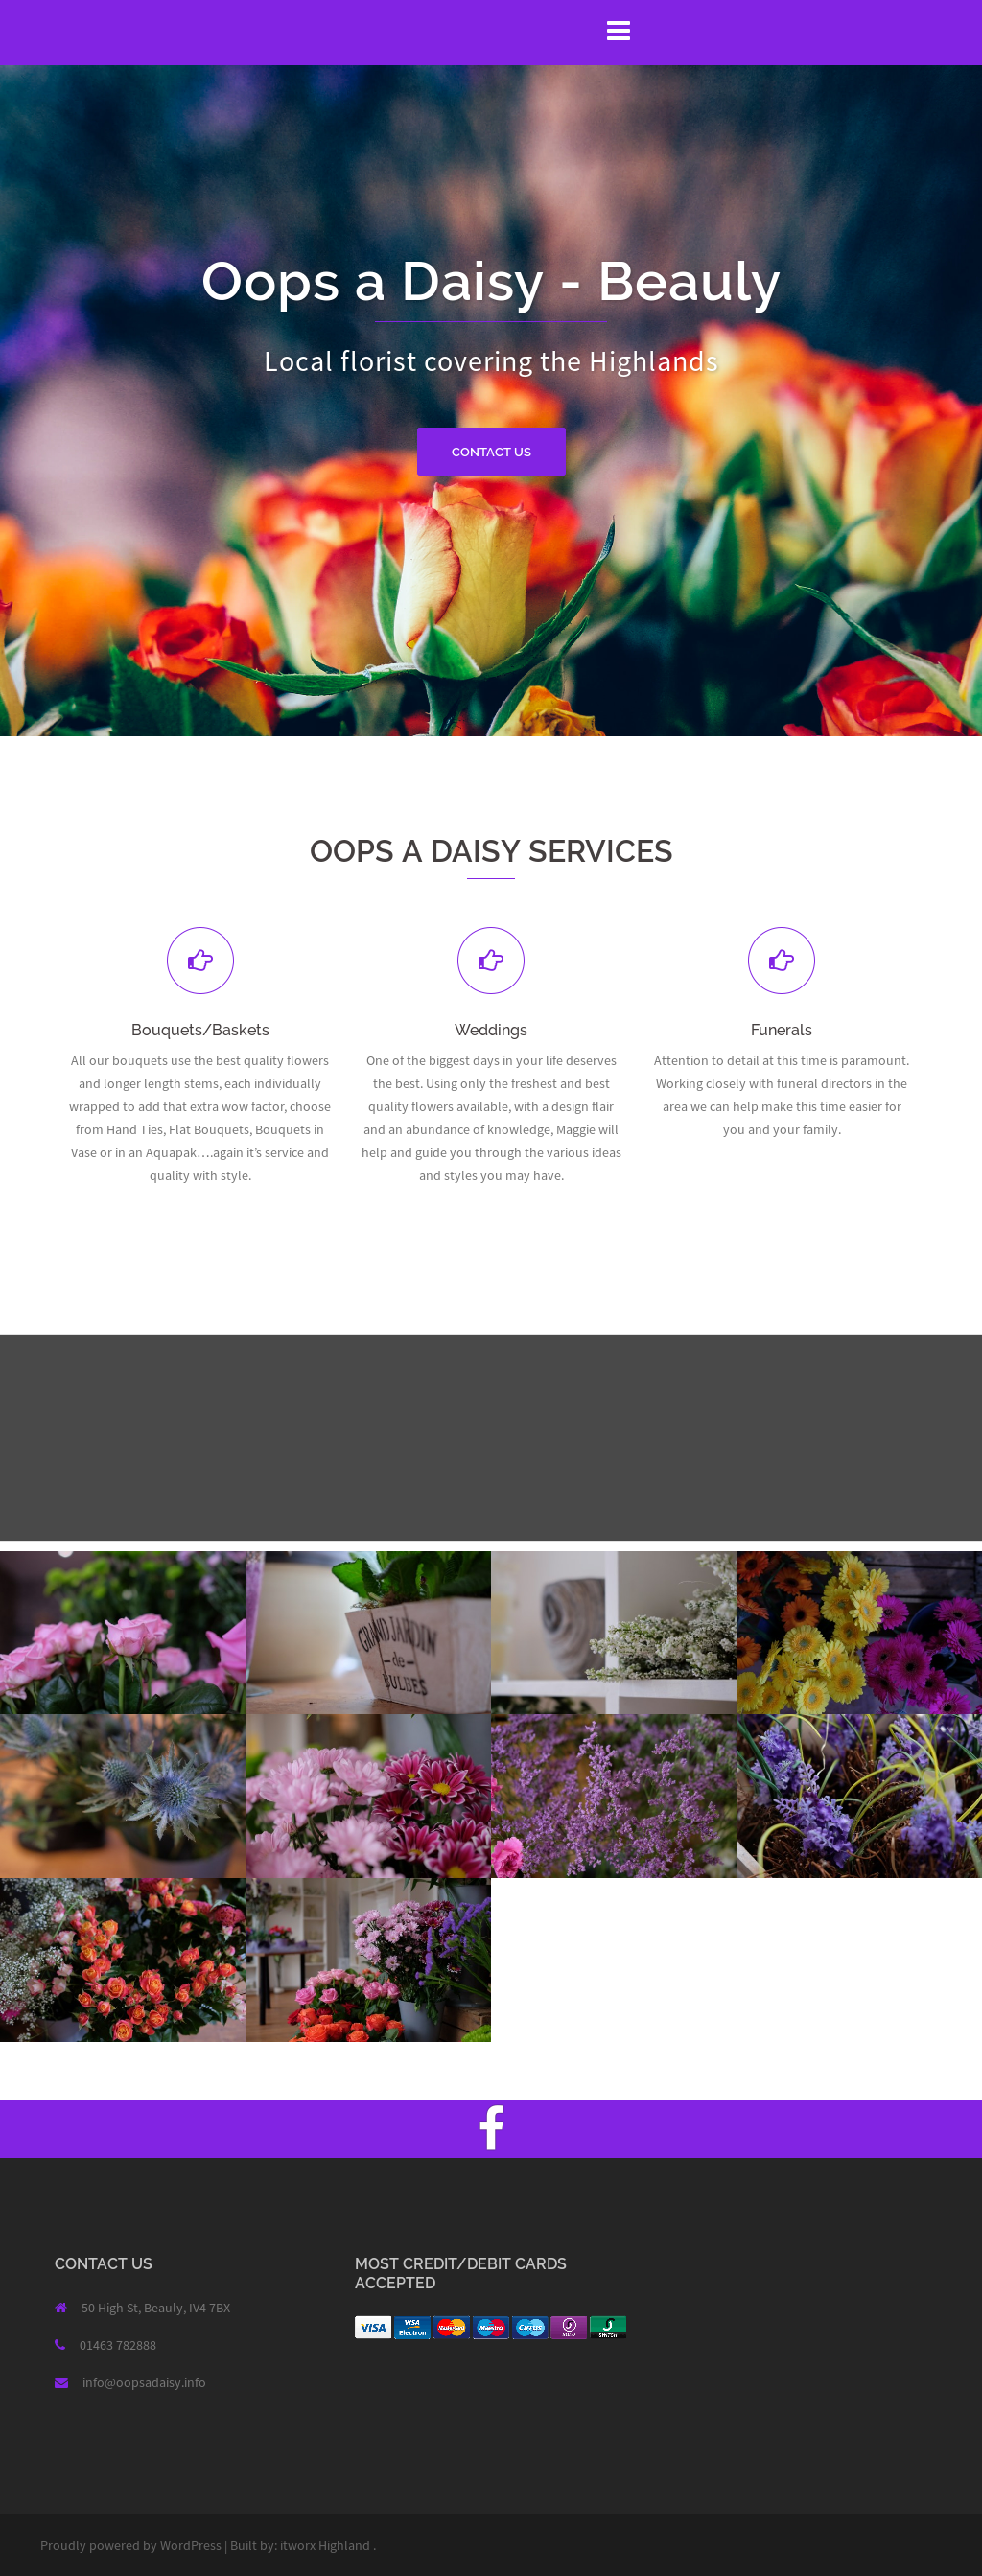 Oops A Daisy Flowers Limited Cirencester Best Image Of Flower